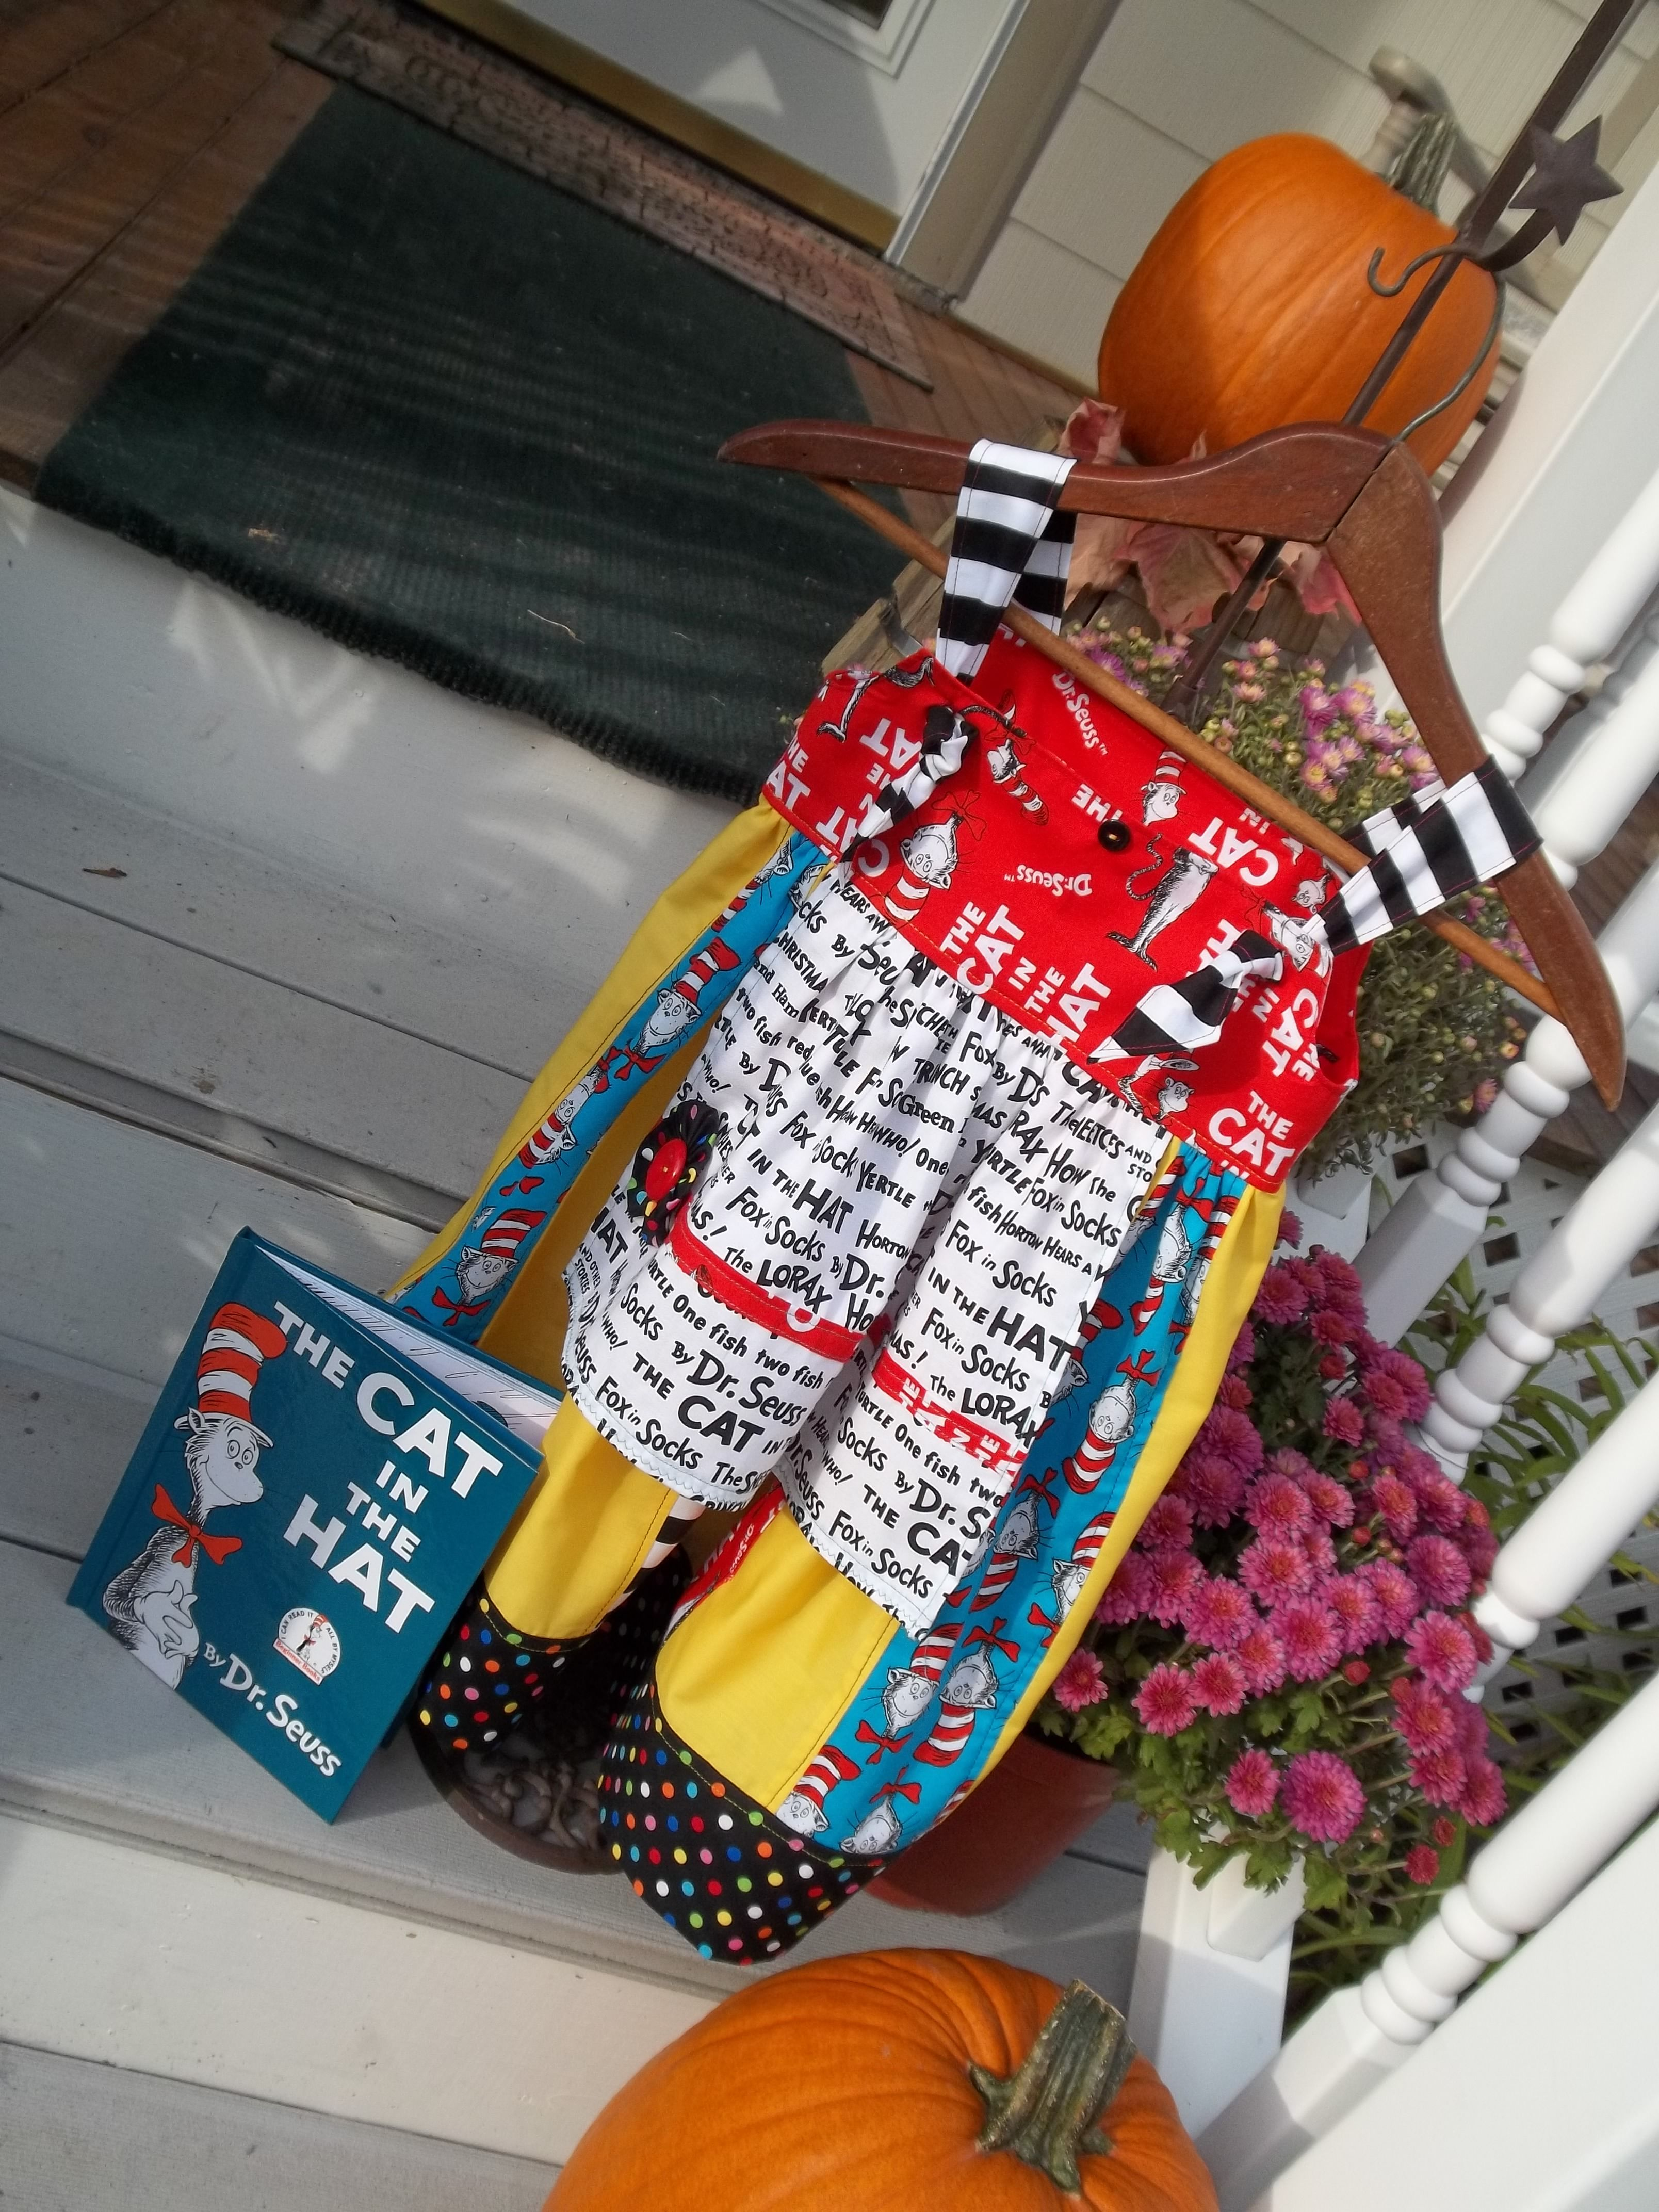 The Cat in the Hat Dress and Book. This was made for R.A.P